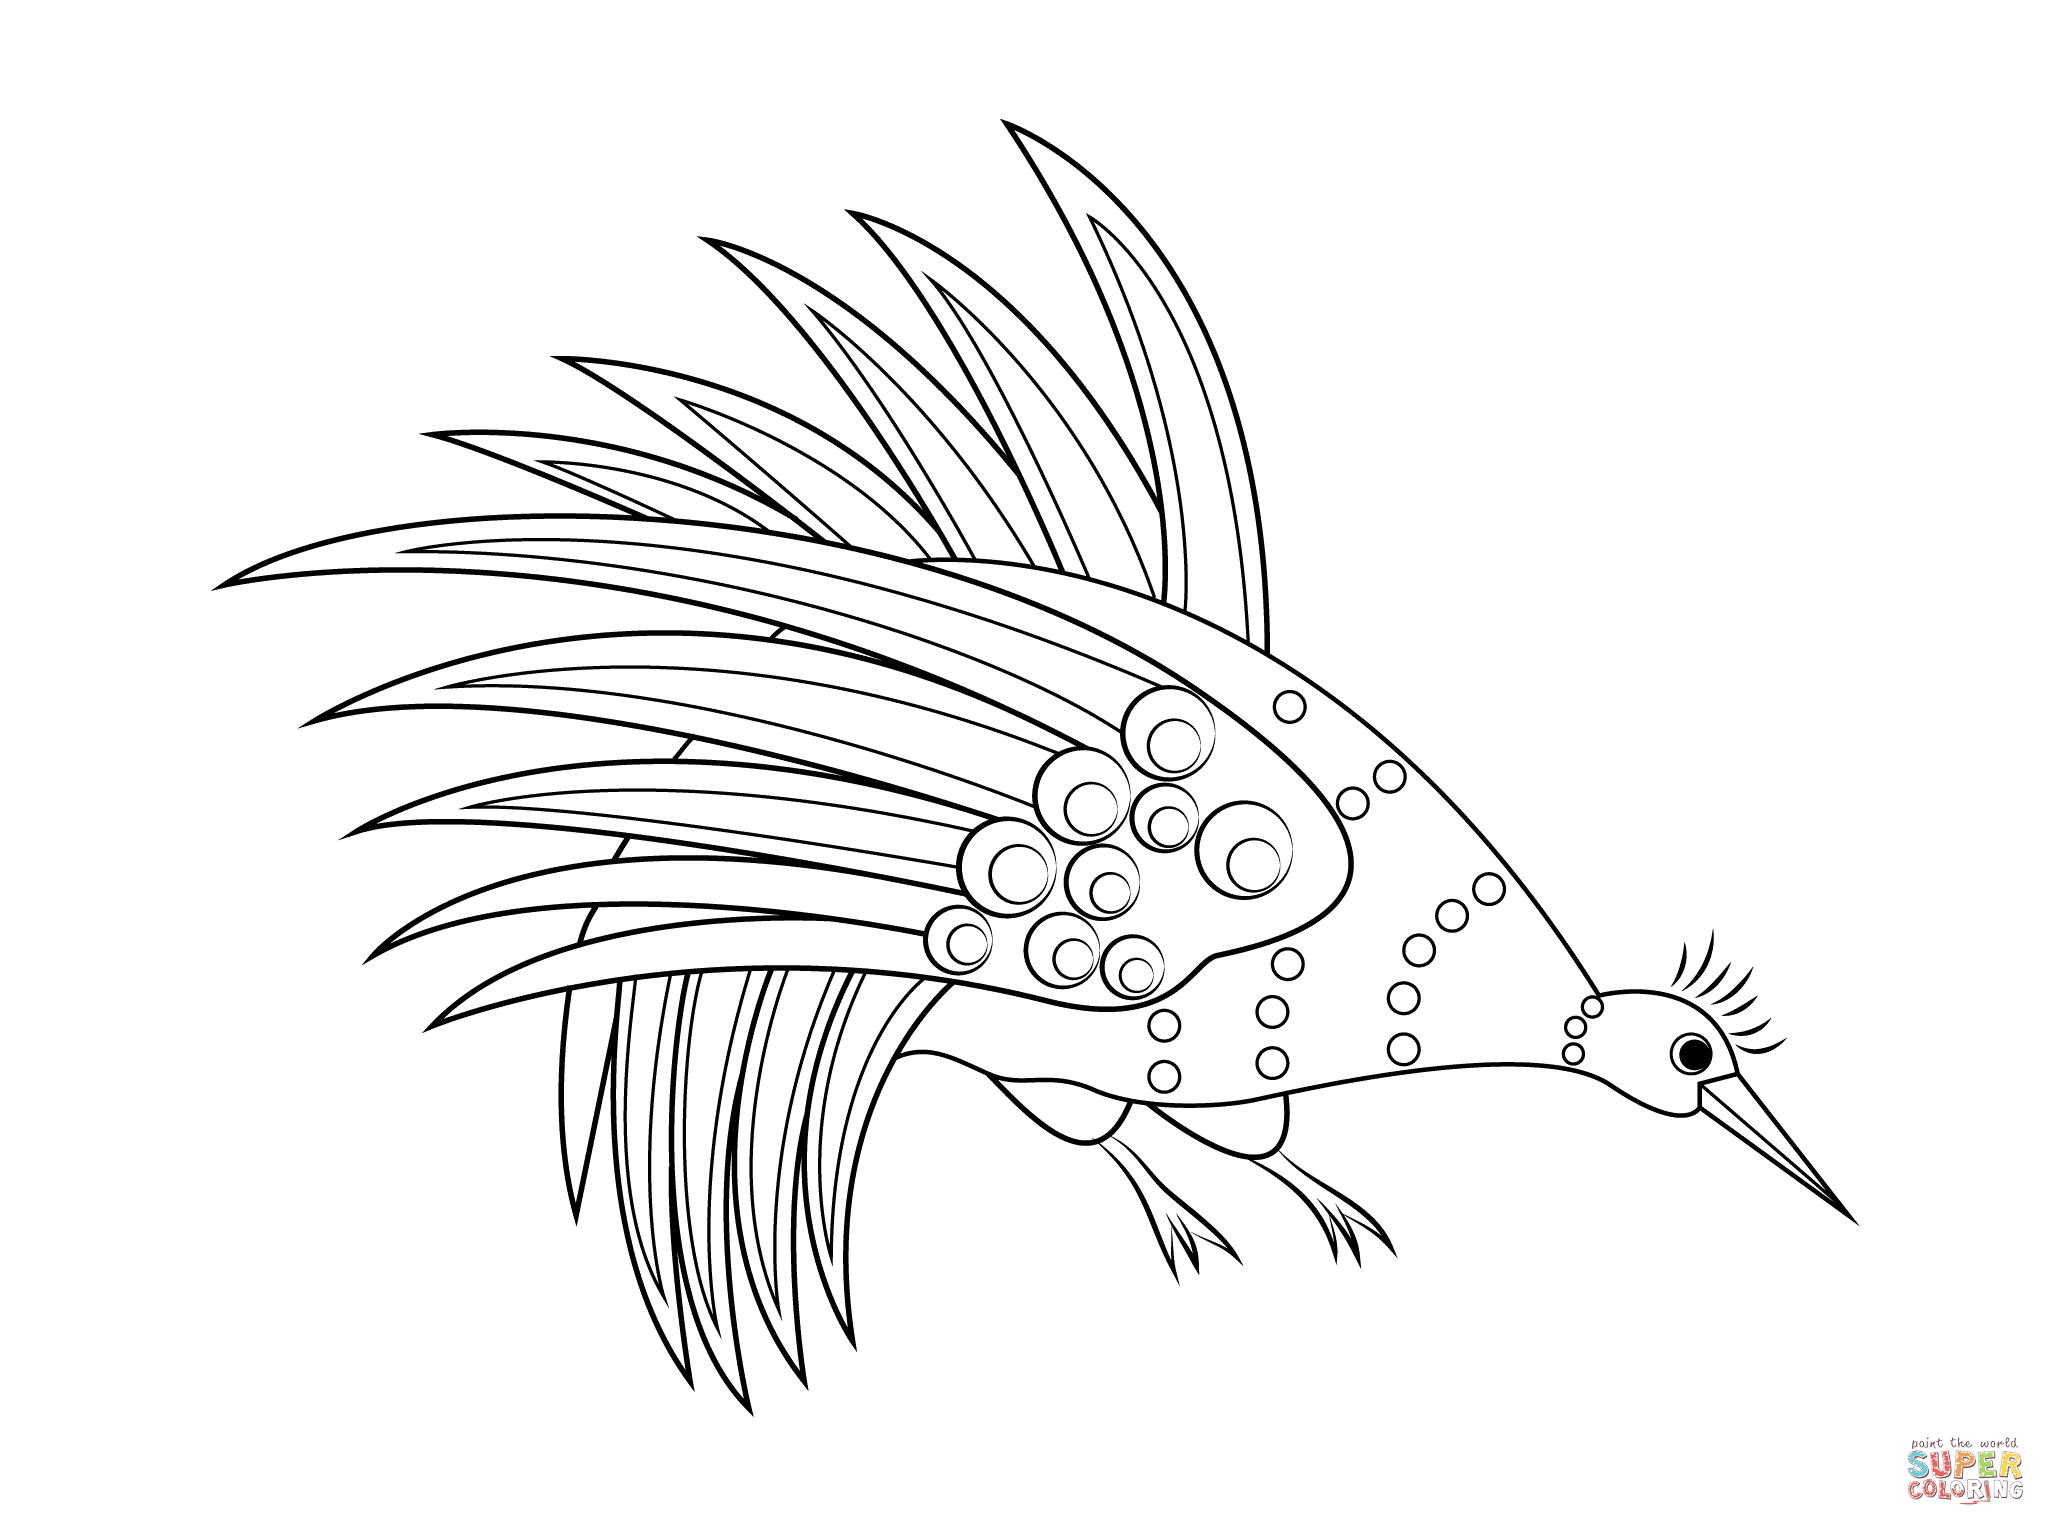 Brown Trout Coloring Page Free walle online coloring pages post an ...